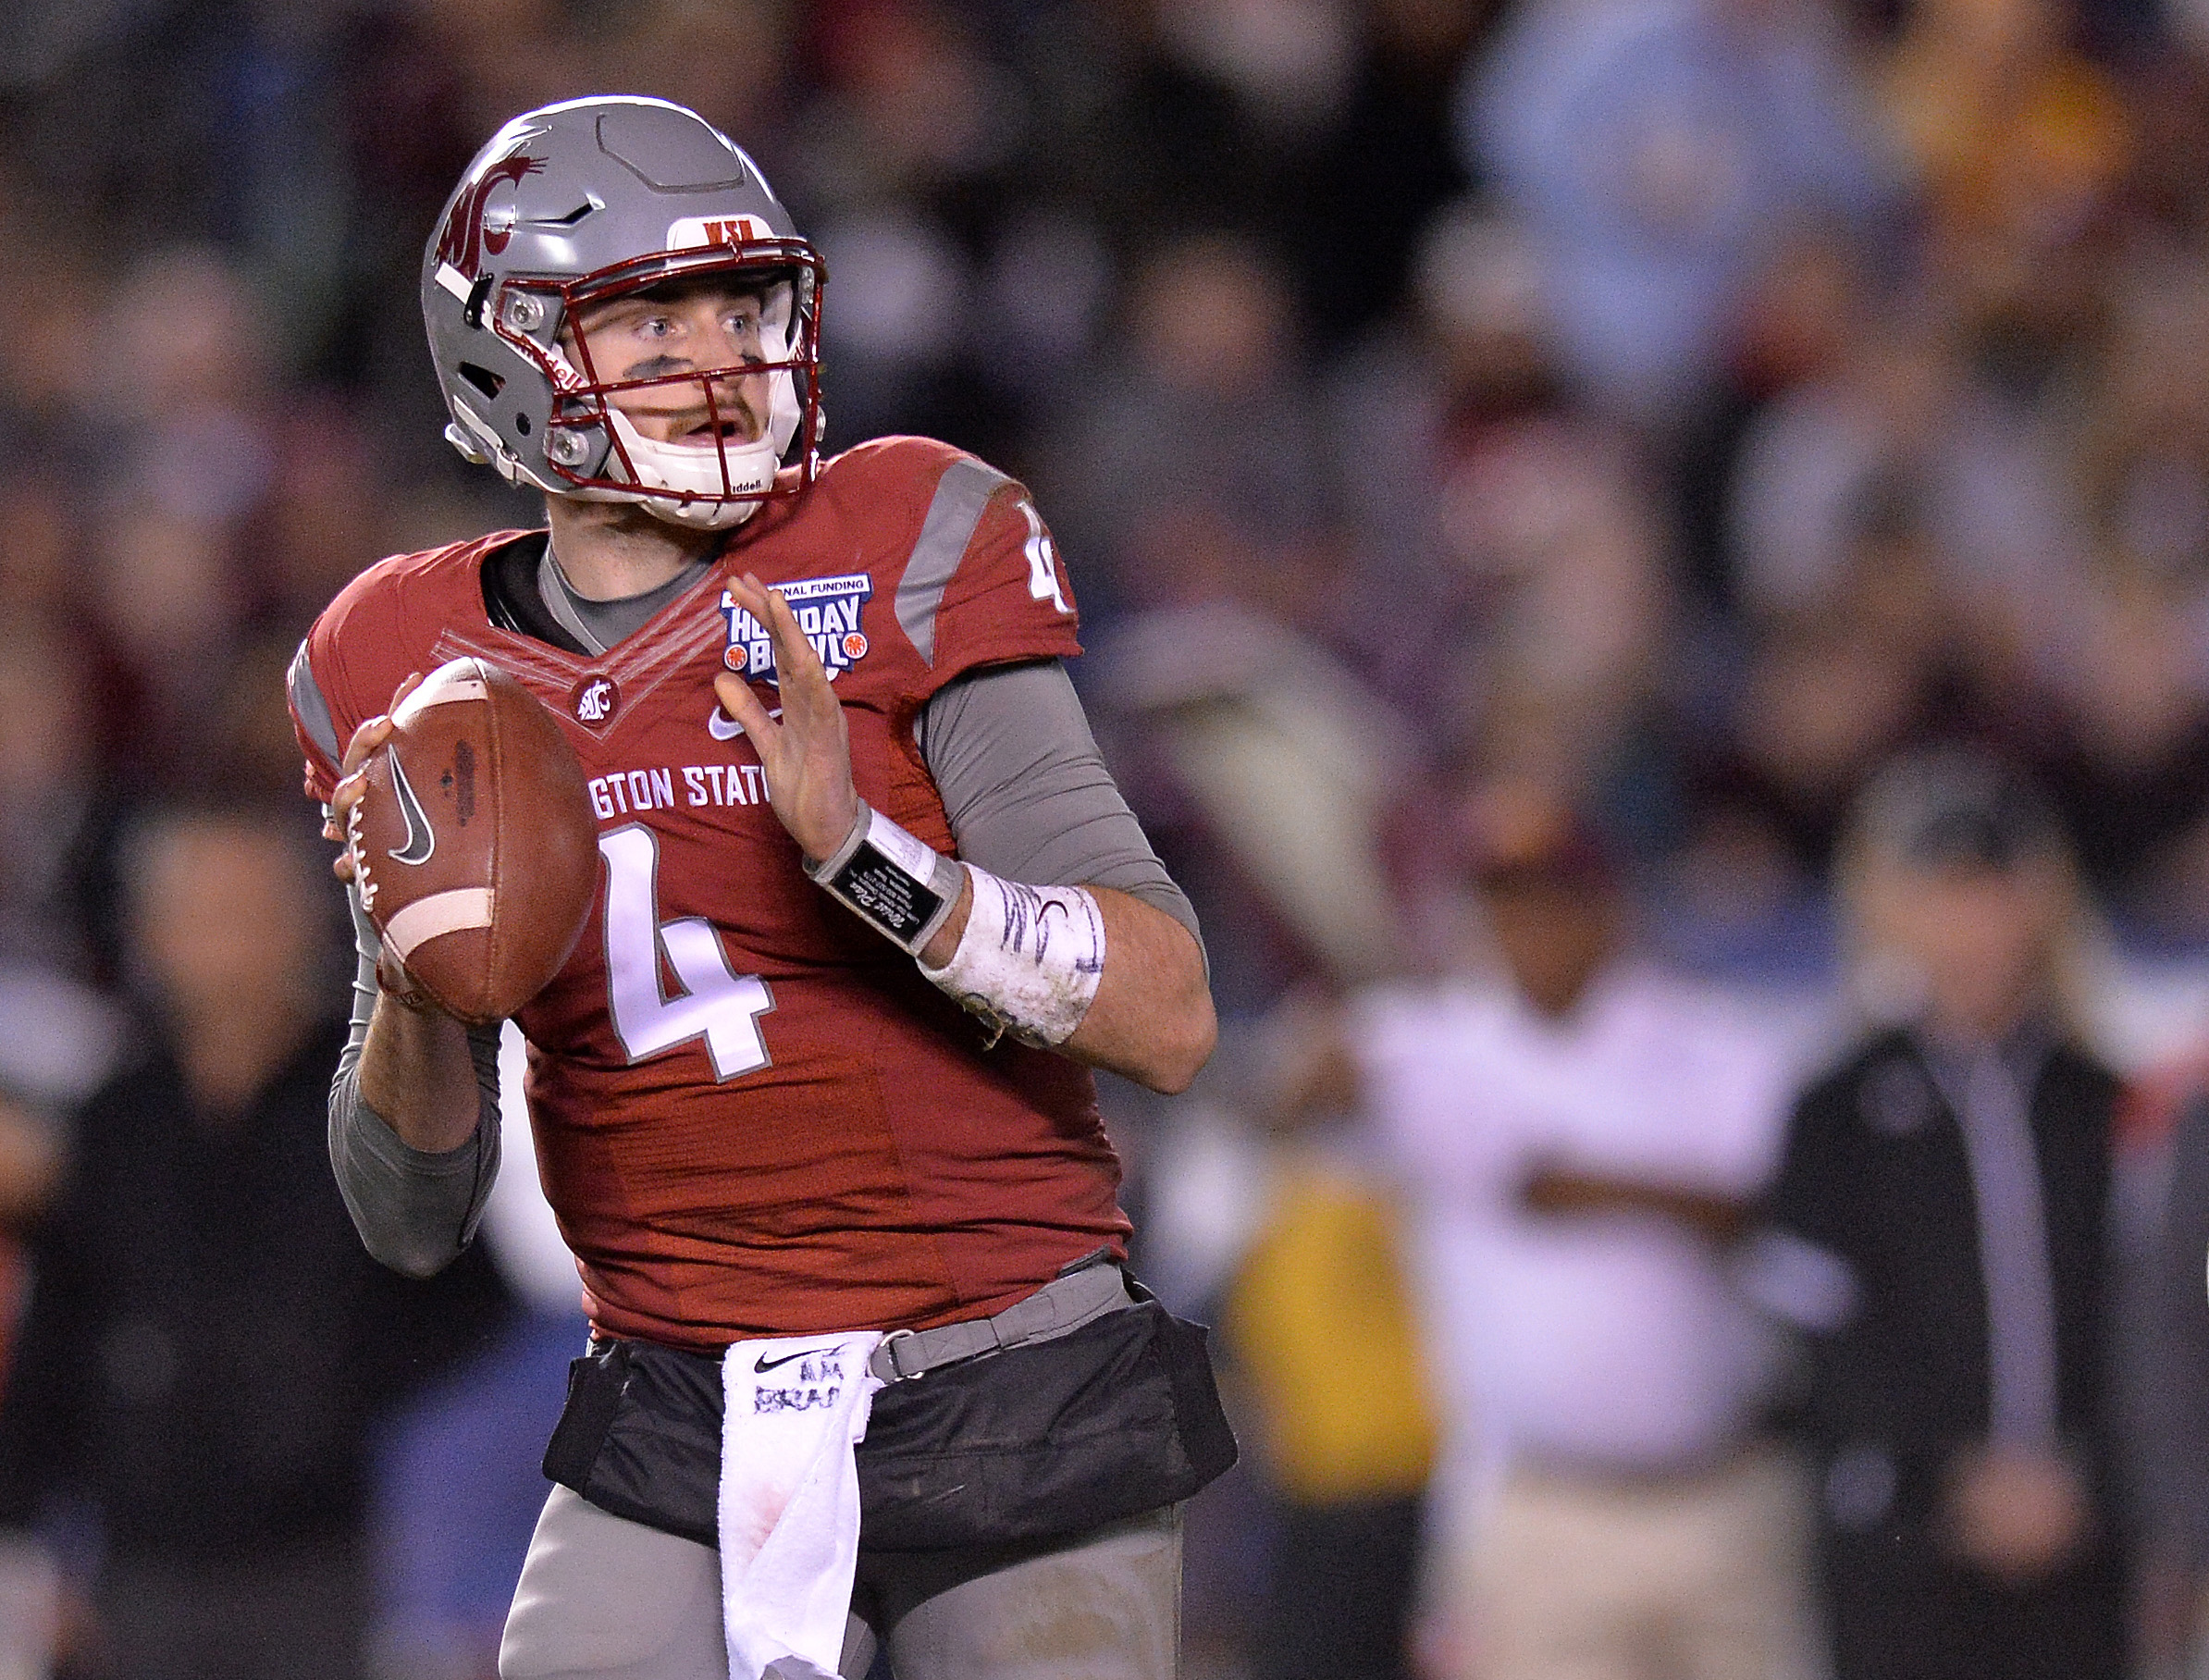 Dec 27, 2016; San Diego , CA, USA; Washington State Cougars quarterback Luke Falk (4) looks to pass against the Minnesota Golden Gophers during the second quarter at Qualcomm Stadium. Mandatory Credit: Jake Roth-USA TODAY Sports